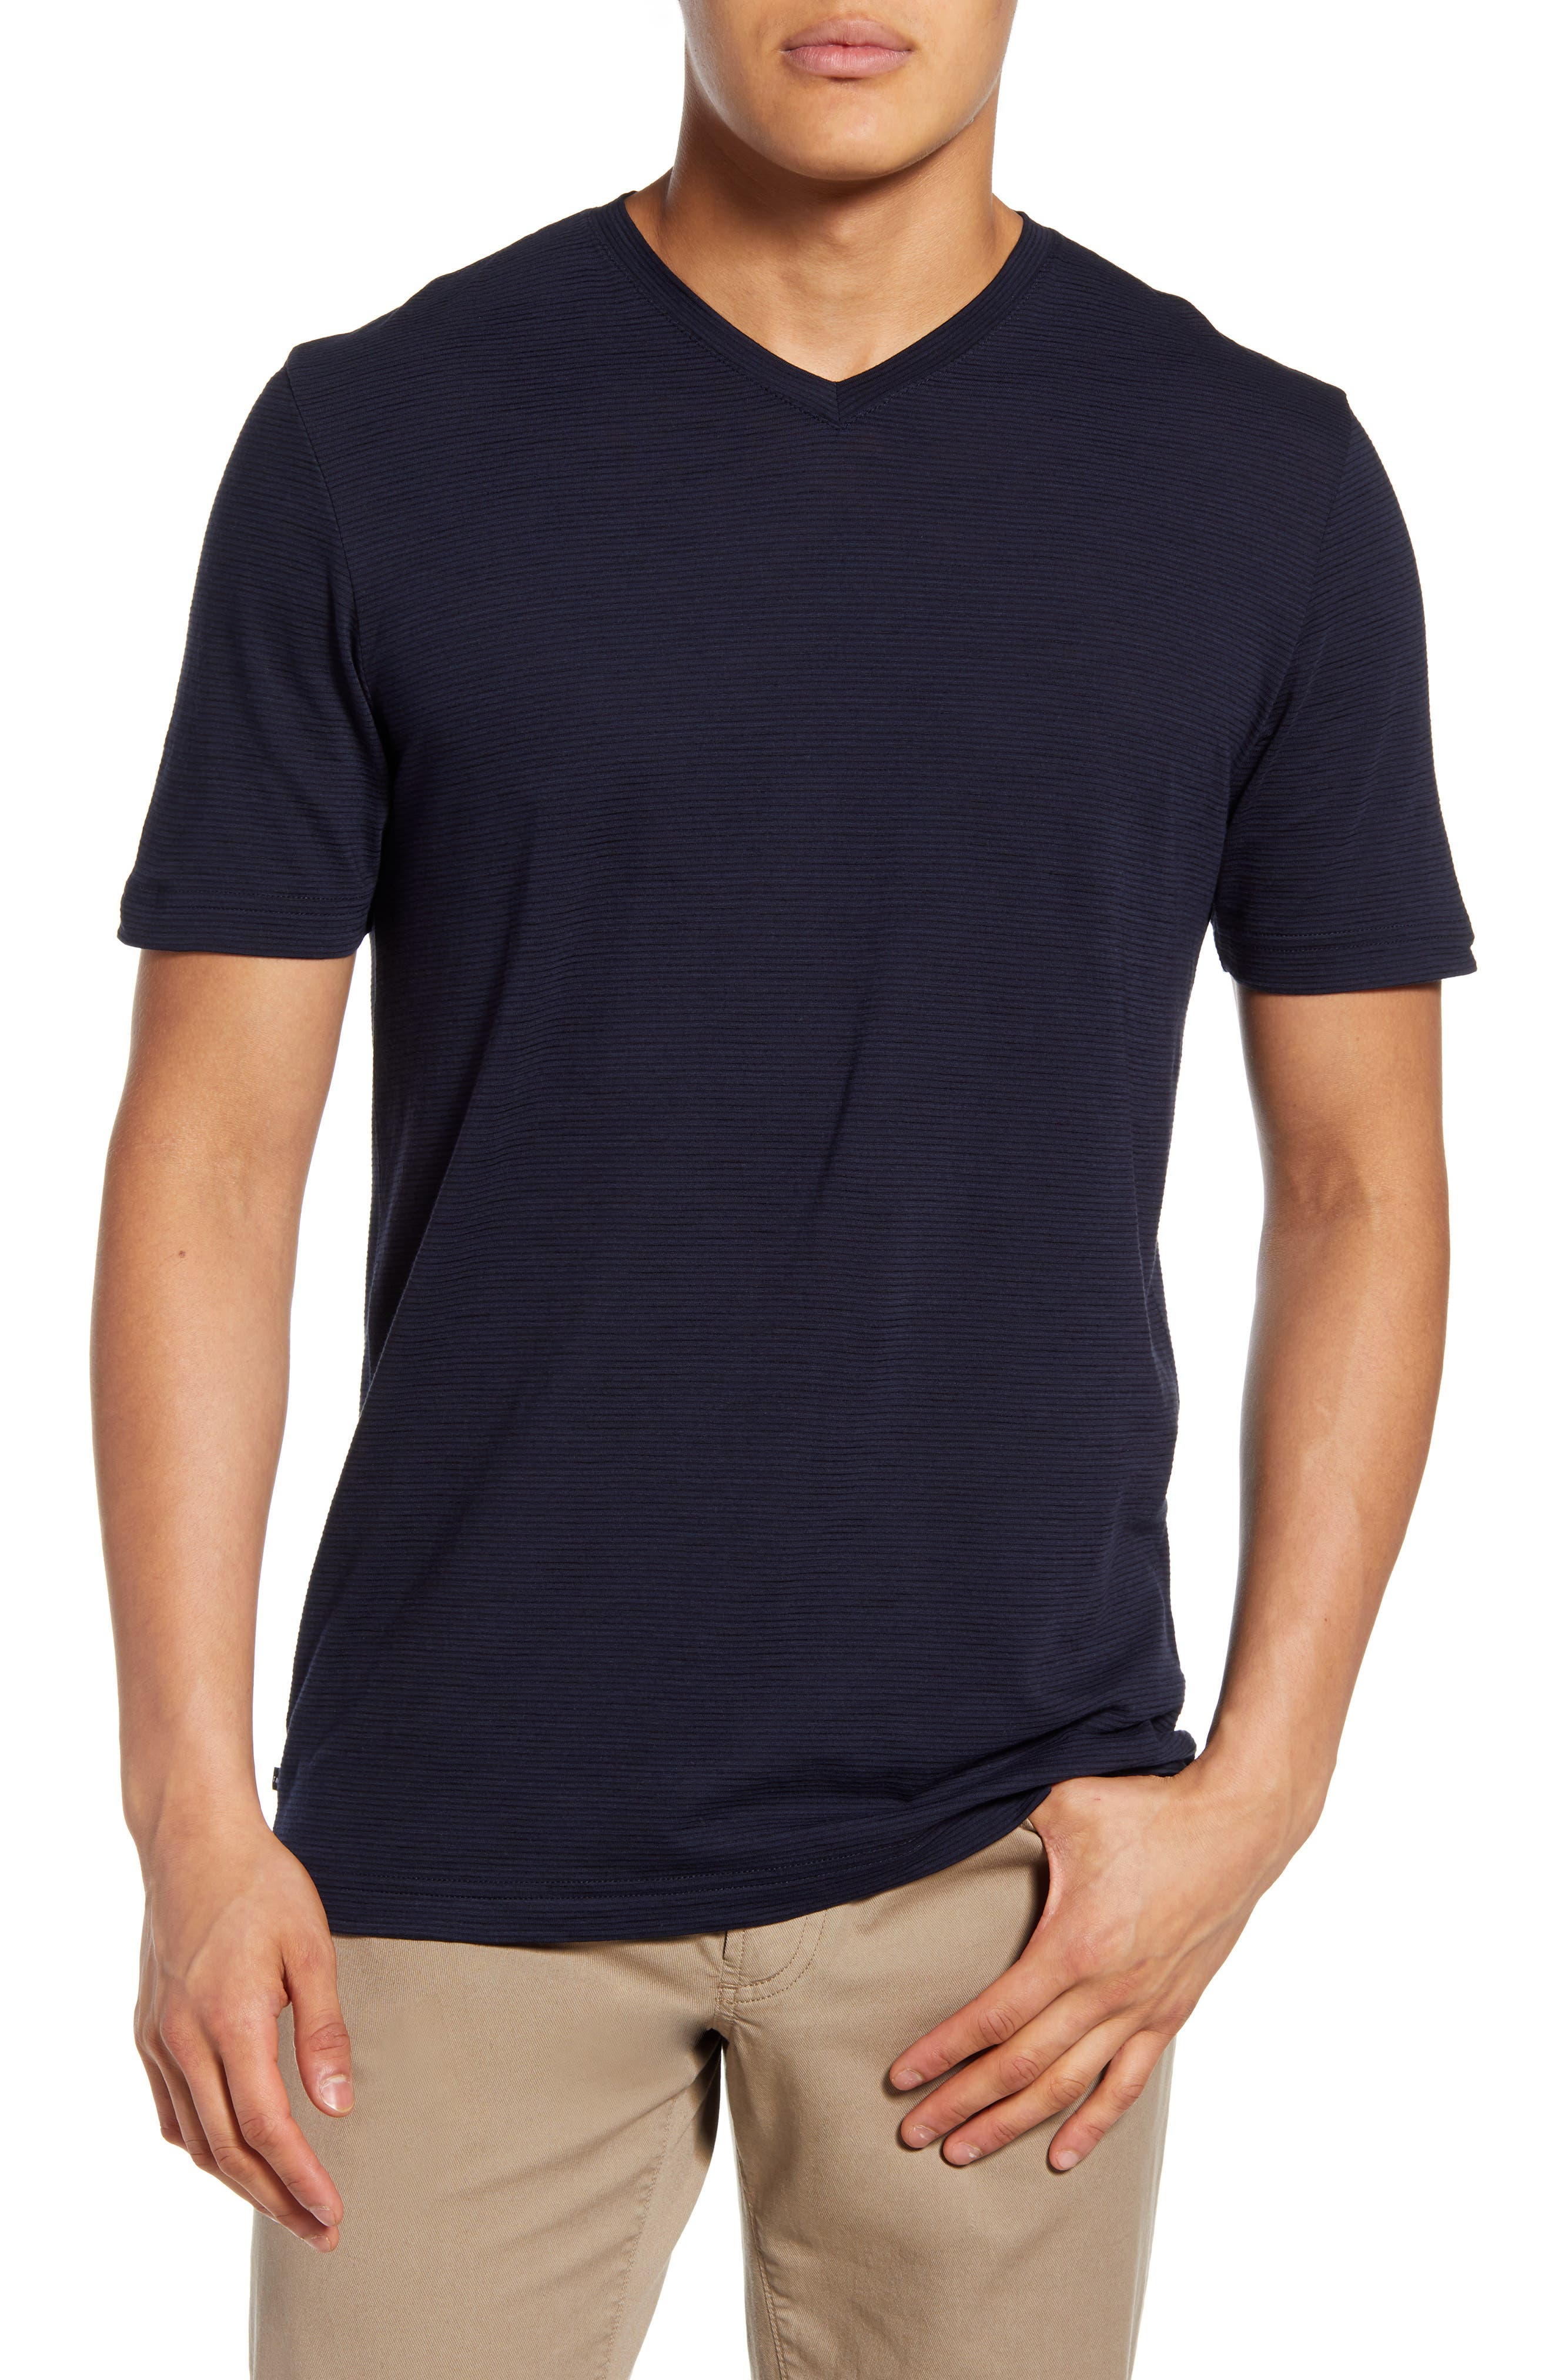 A V-neck smartens the profile of a wardrobe-staple T-shirt crafted from an undeniably soft and breathable cotton blend with a look that can take you anywhere. Style Name: Travismathew Trumbull V-Neck T-Shirt. Style Number: 5937714. Available in stores.